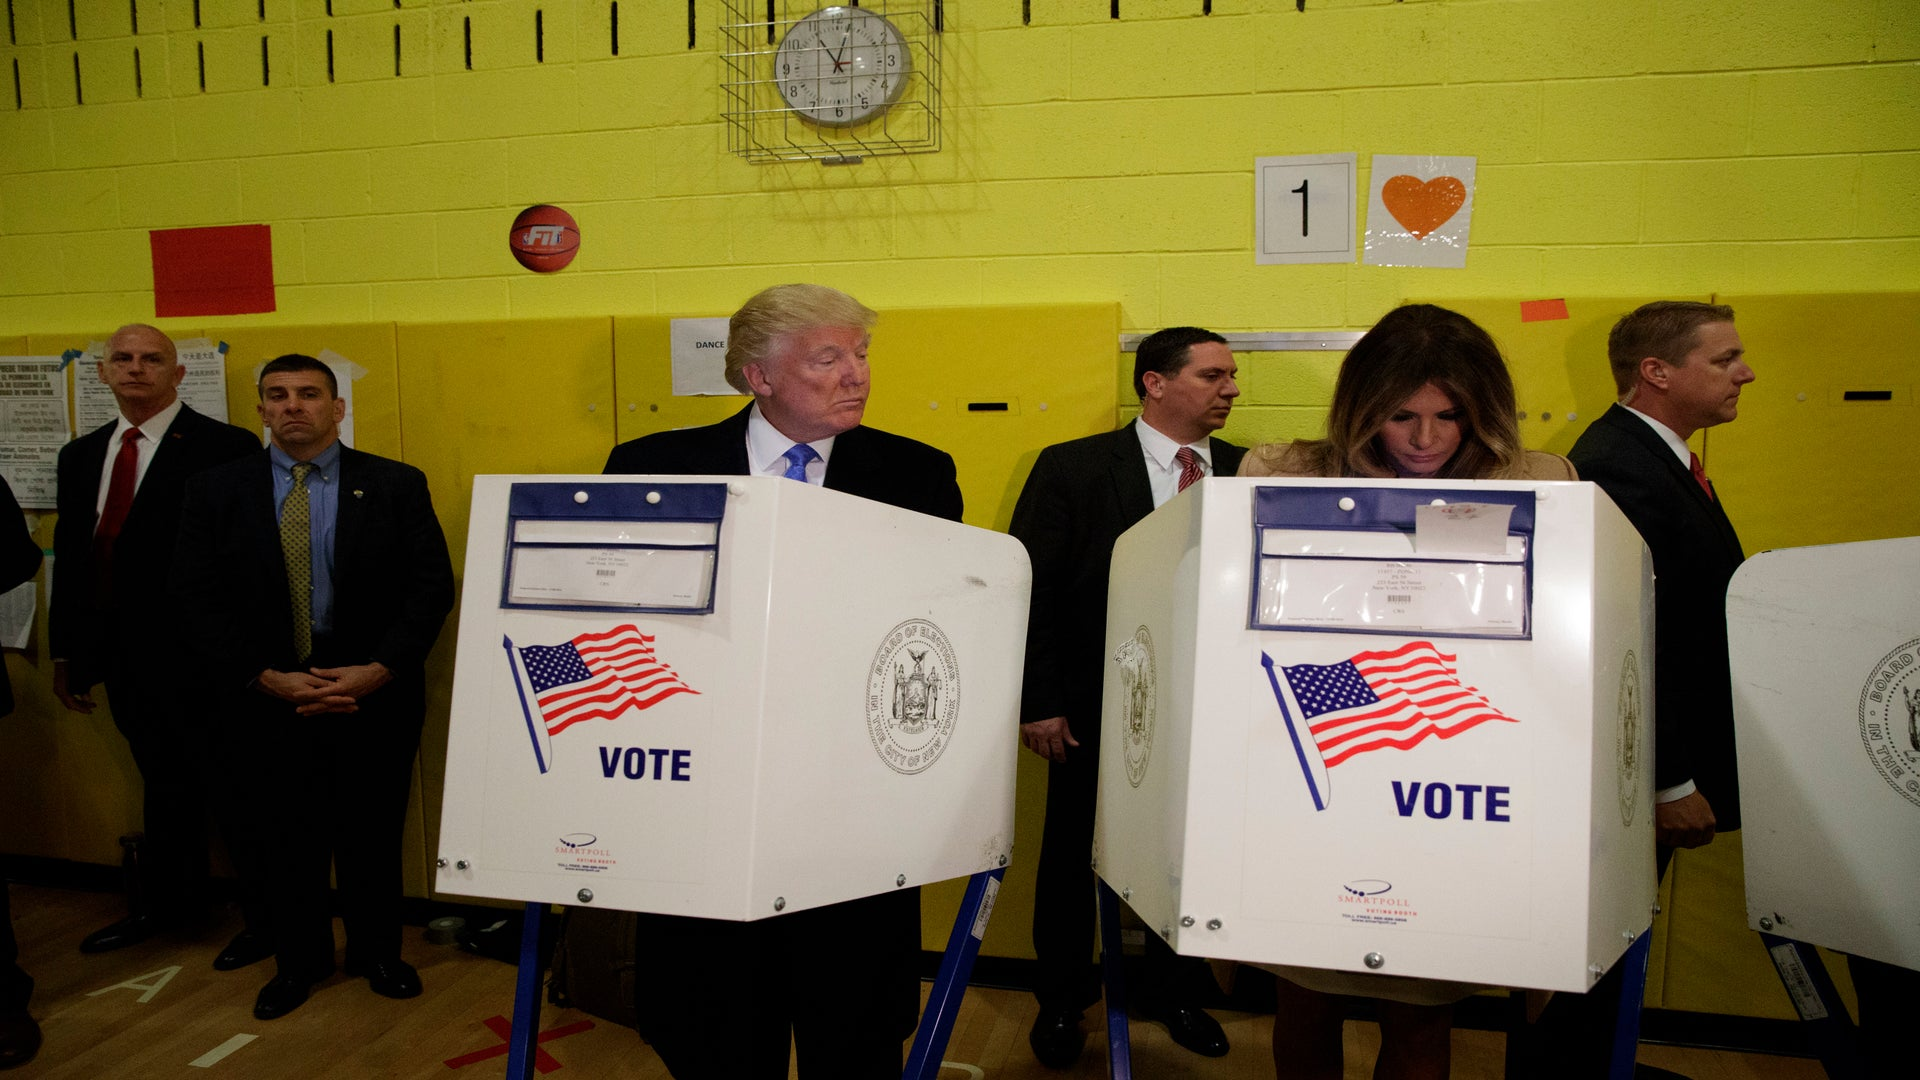 Donald & Eric Trump Couldn't Help But Check Out Their Wives' Ballots At The Polls